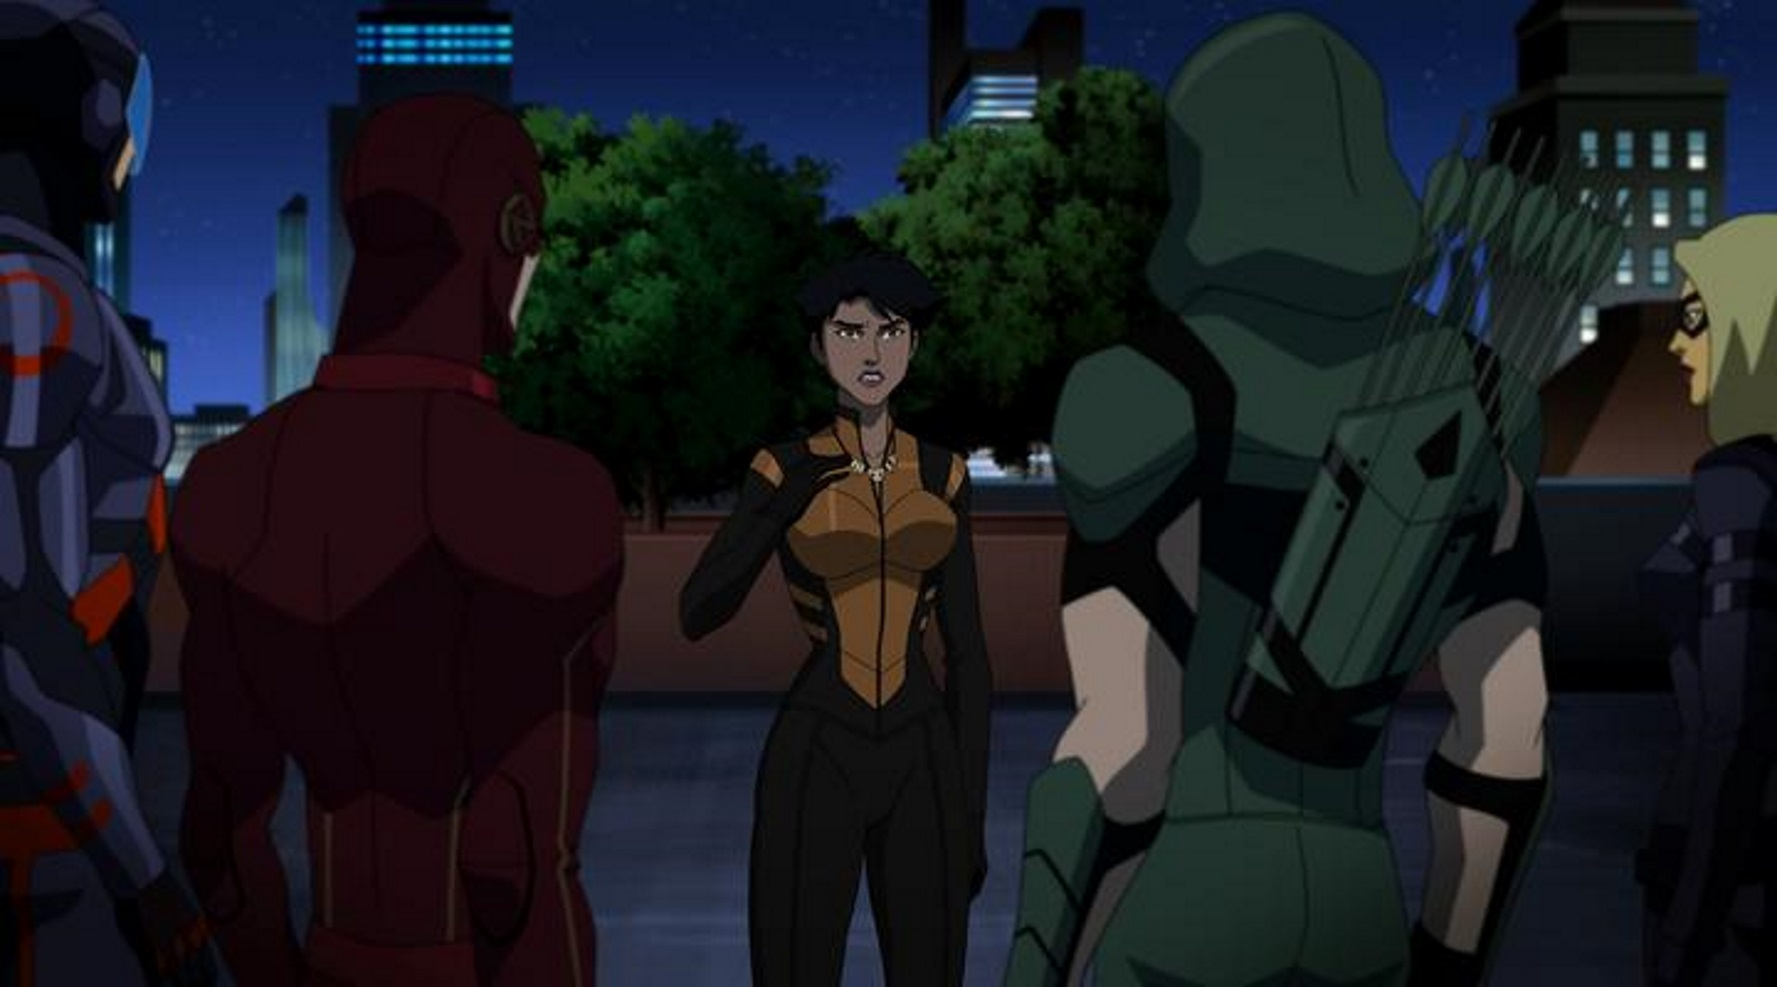 Megalyn Echikunwoke, Brandon Routh, Katie Cassidy, Stephen Amell, and Grant Gustin in Vixen (2015)